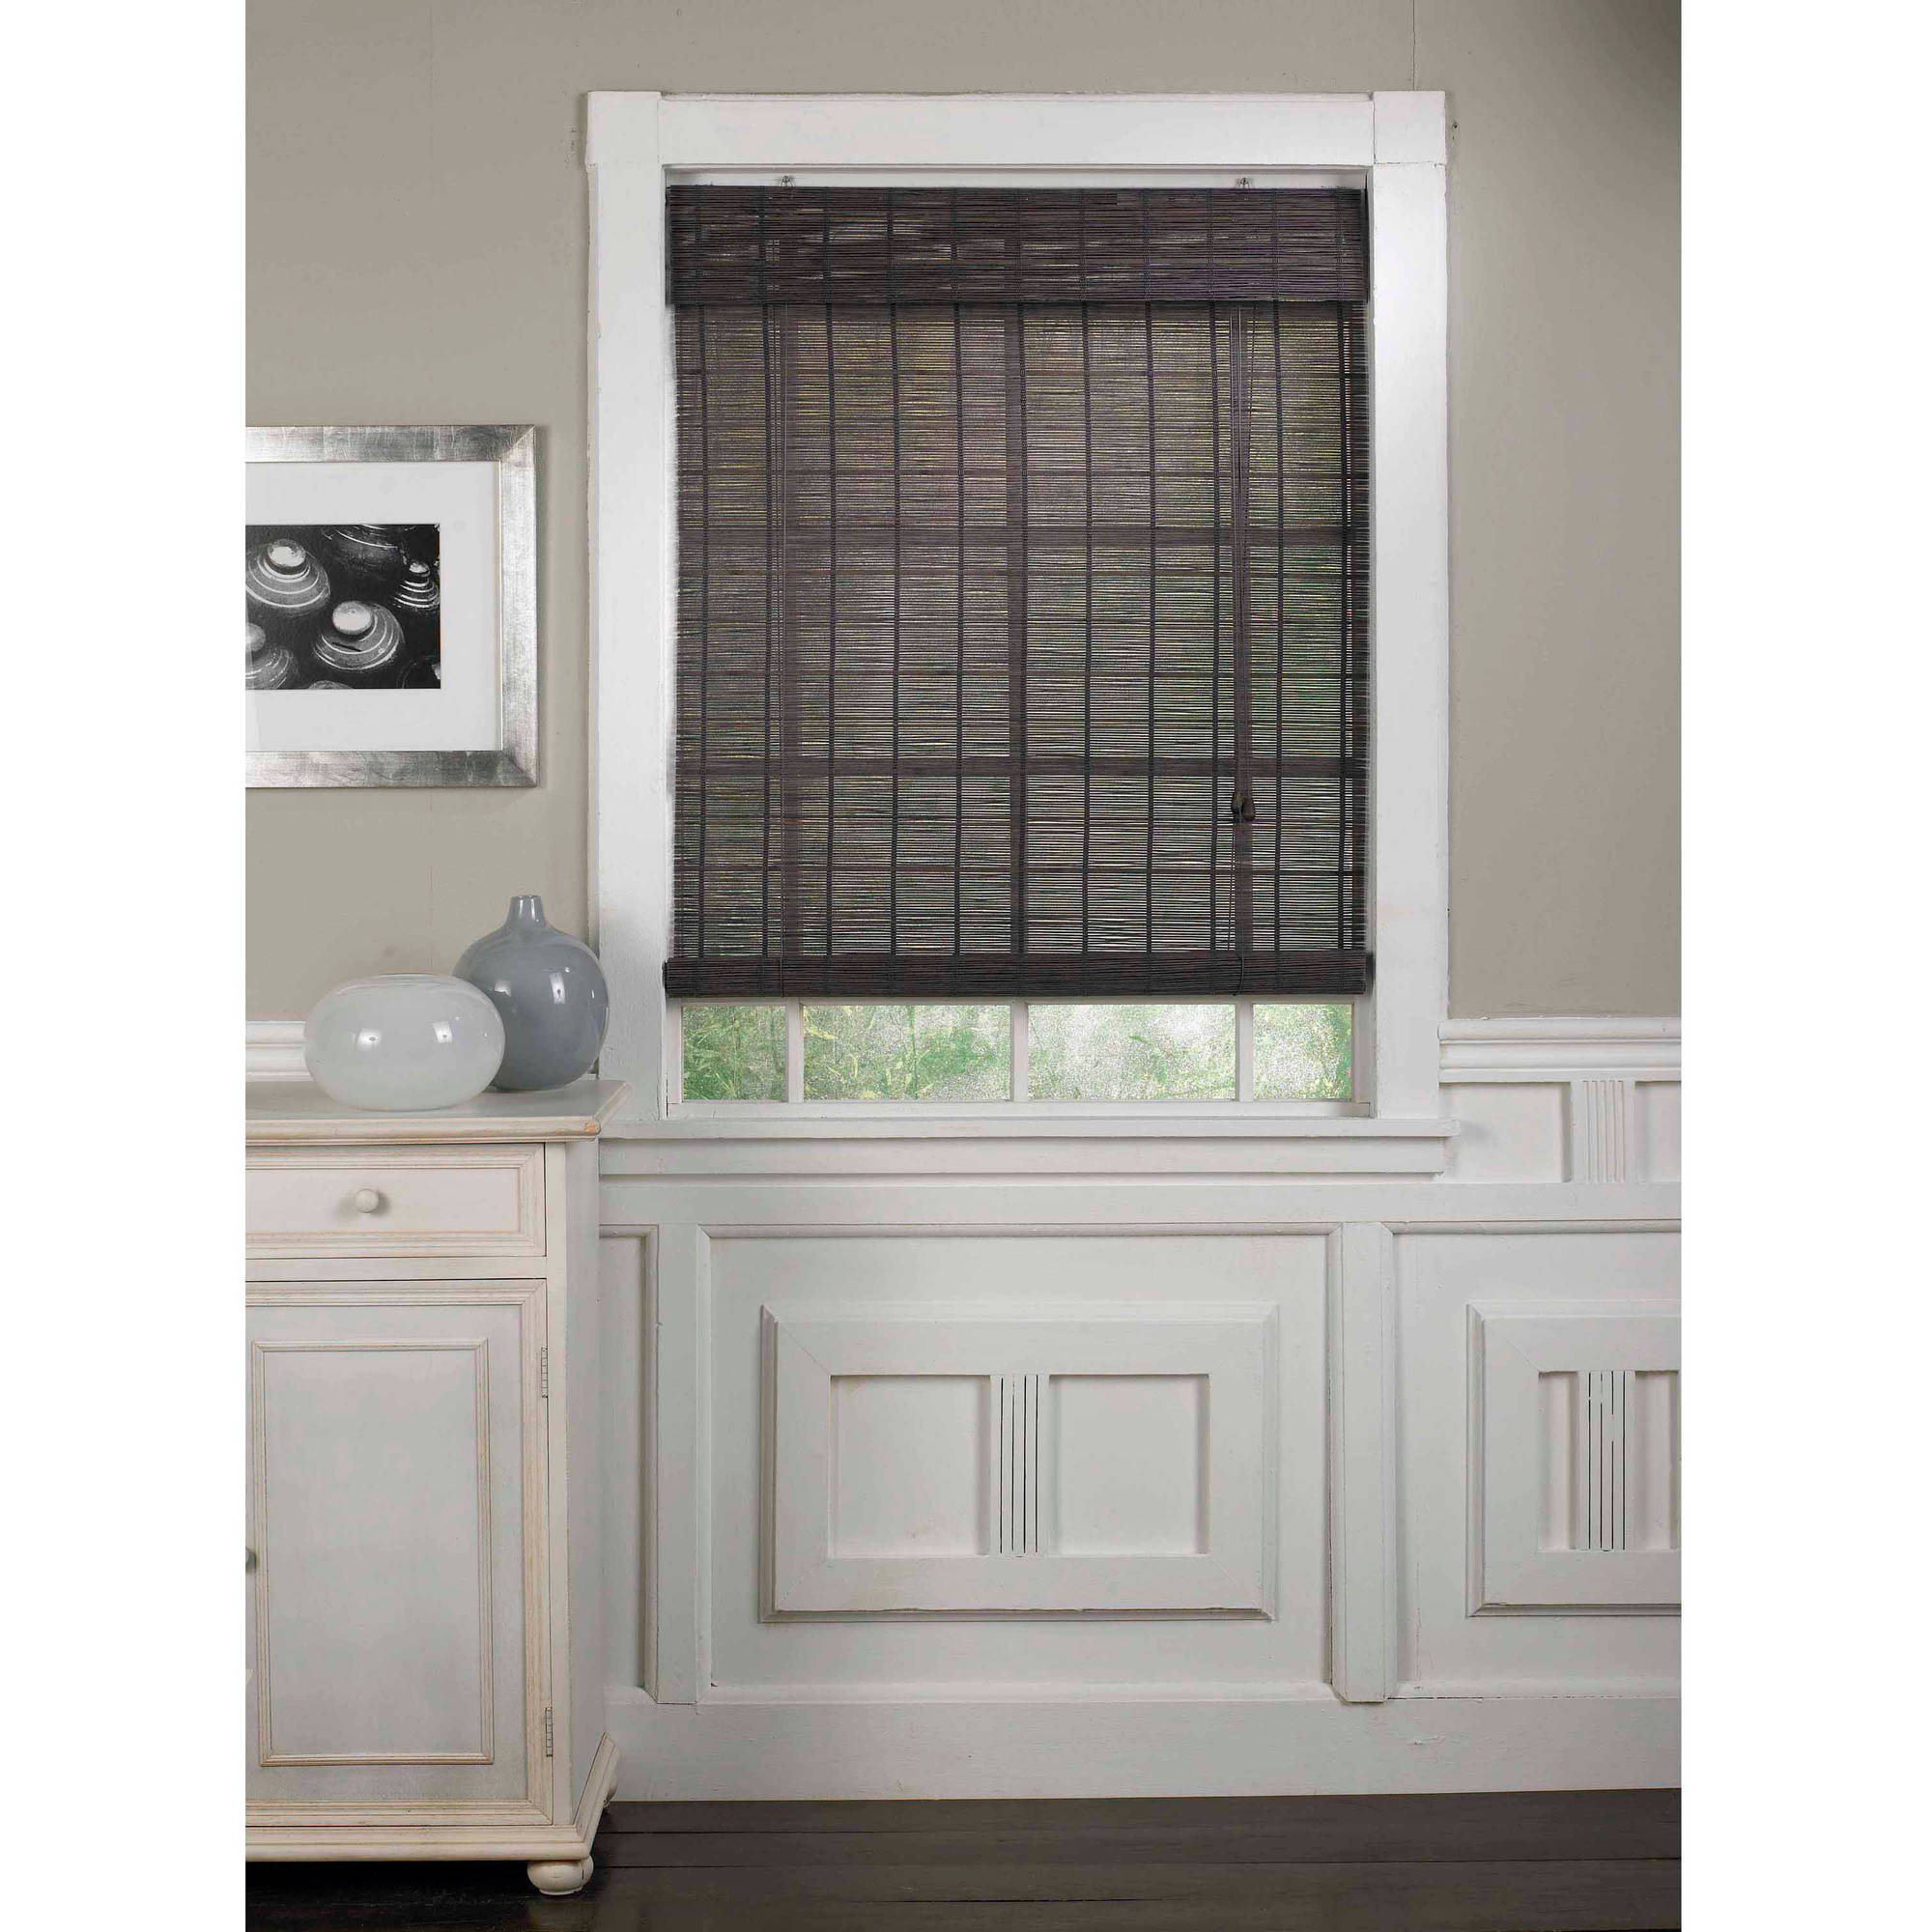 walmart ideas full and vertical size for entry blackout bedroom roller glass shades window blinds of kitchen cellular french windows doors in door sliding patio long